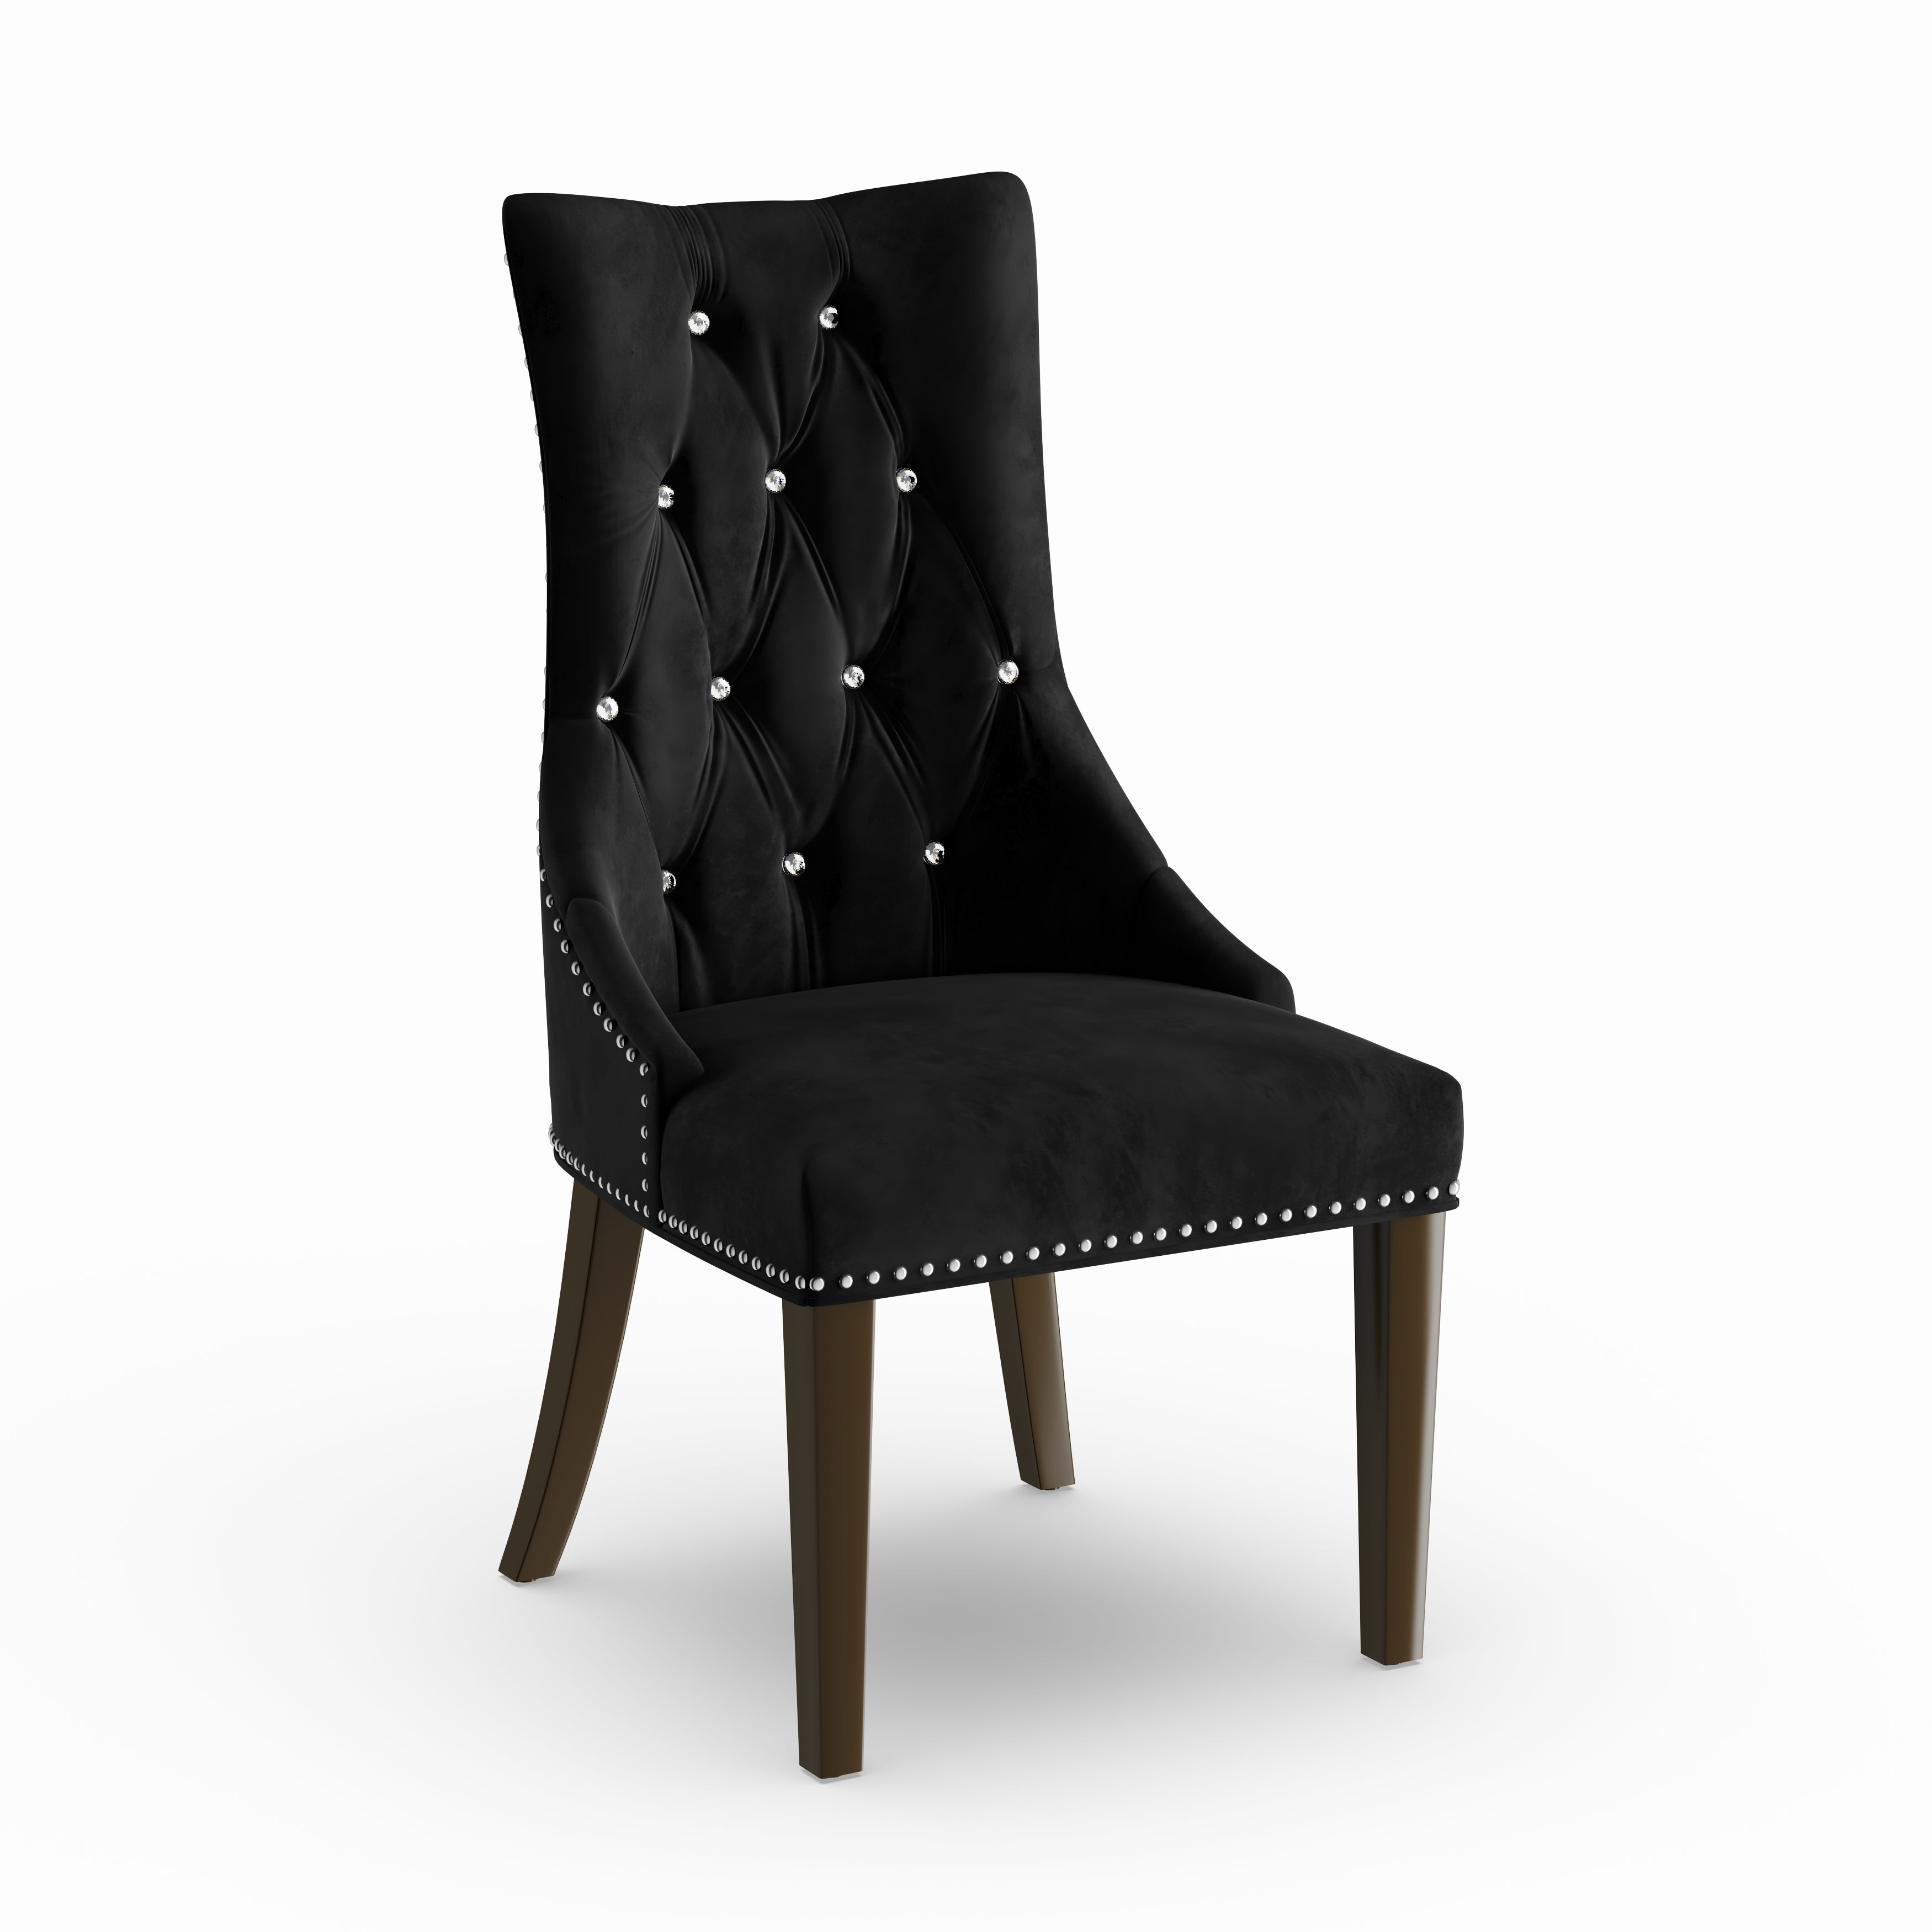 Shop silver orchid heston black velvet dining chair free shipping today overstock com 20882422